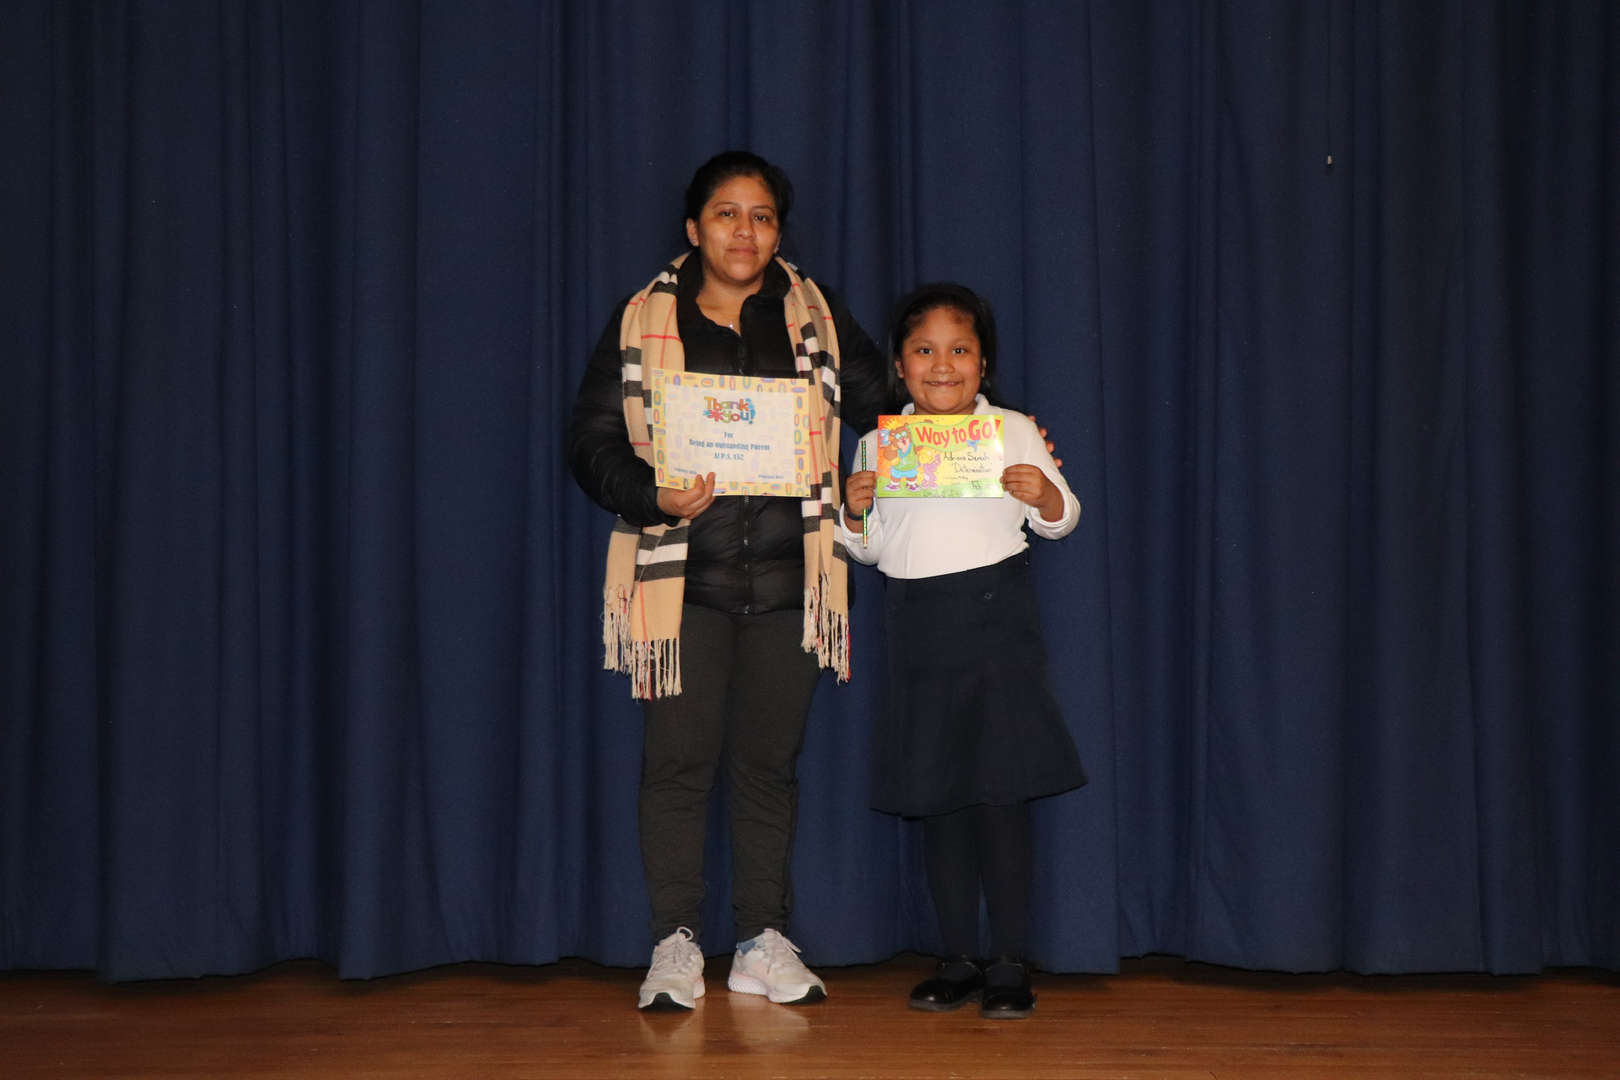 Second Grade Parent with her child who is student of the month.